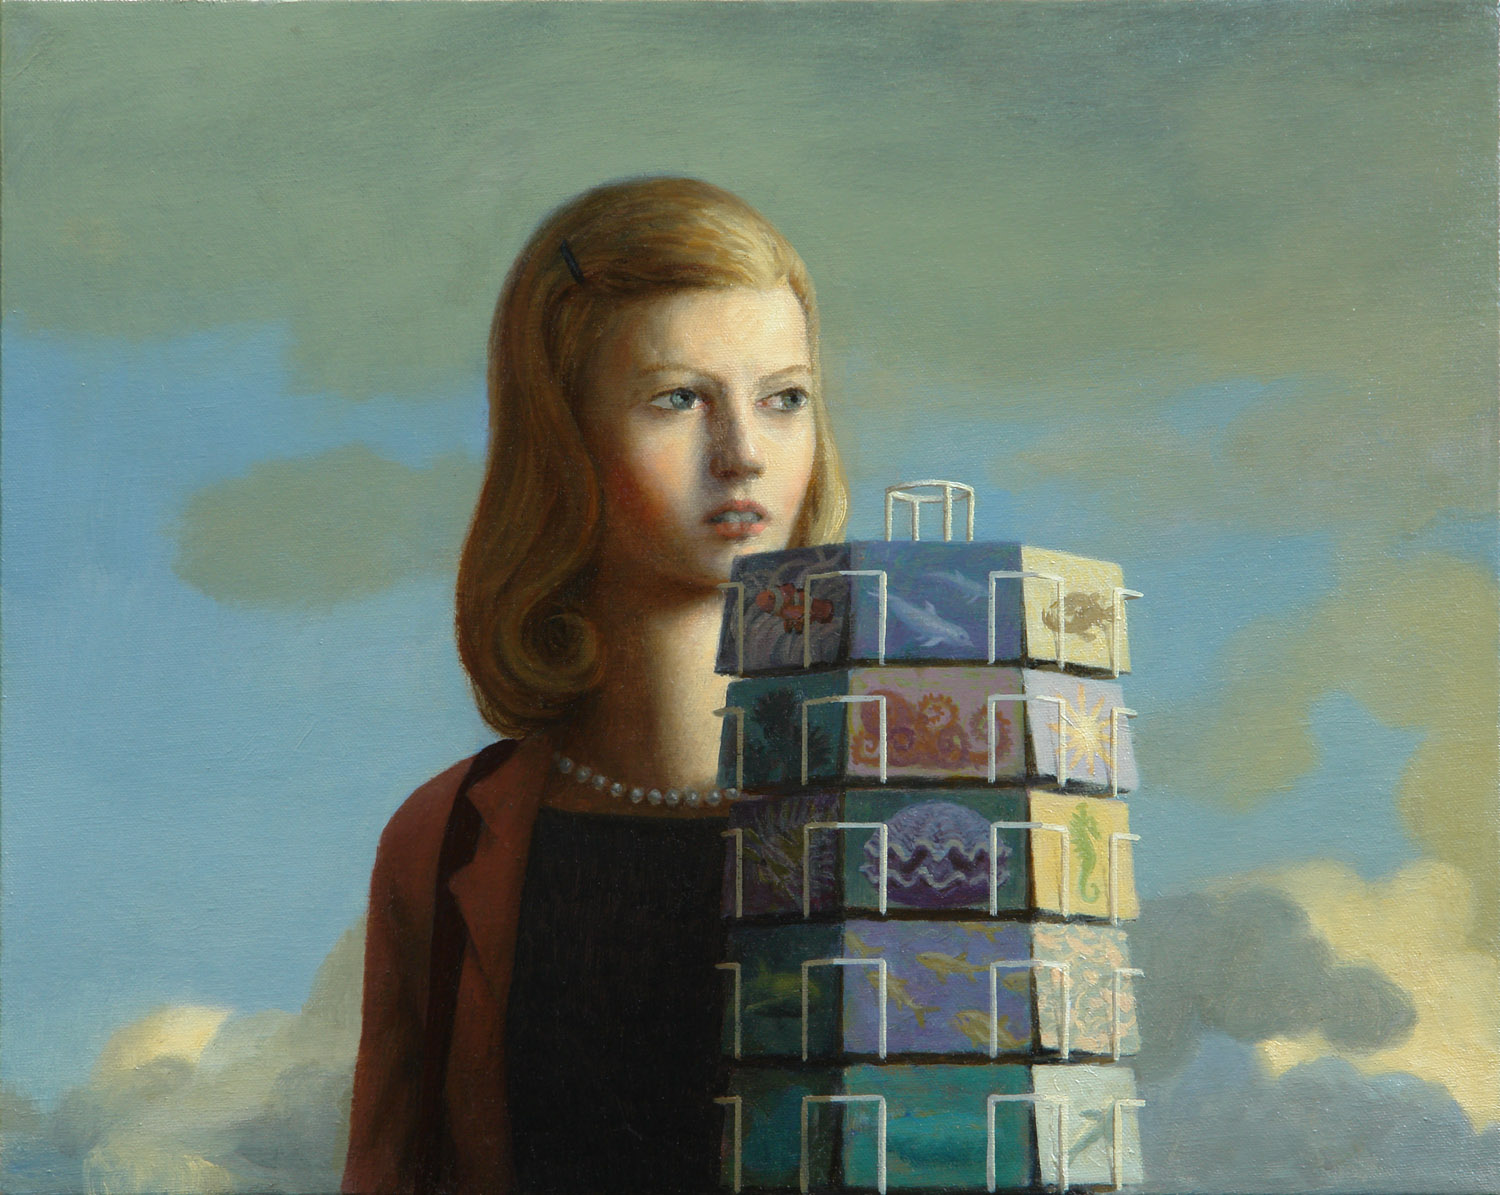 Postcards , oil on canvas, 16 x 20 in / 41 x 51 cm, 2009